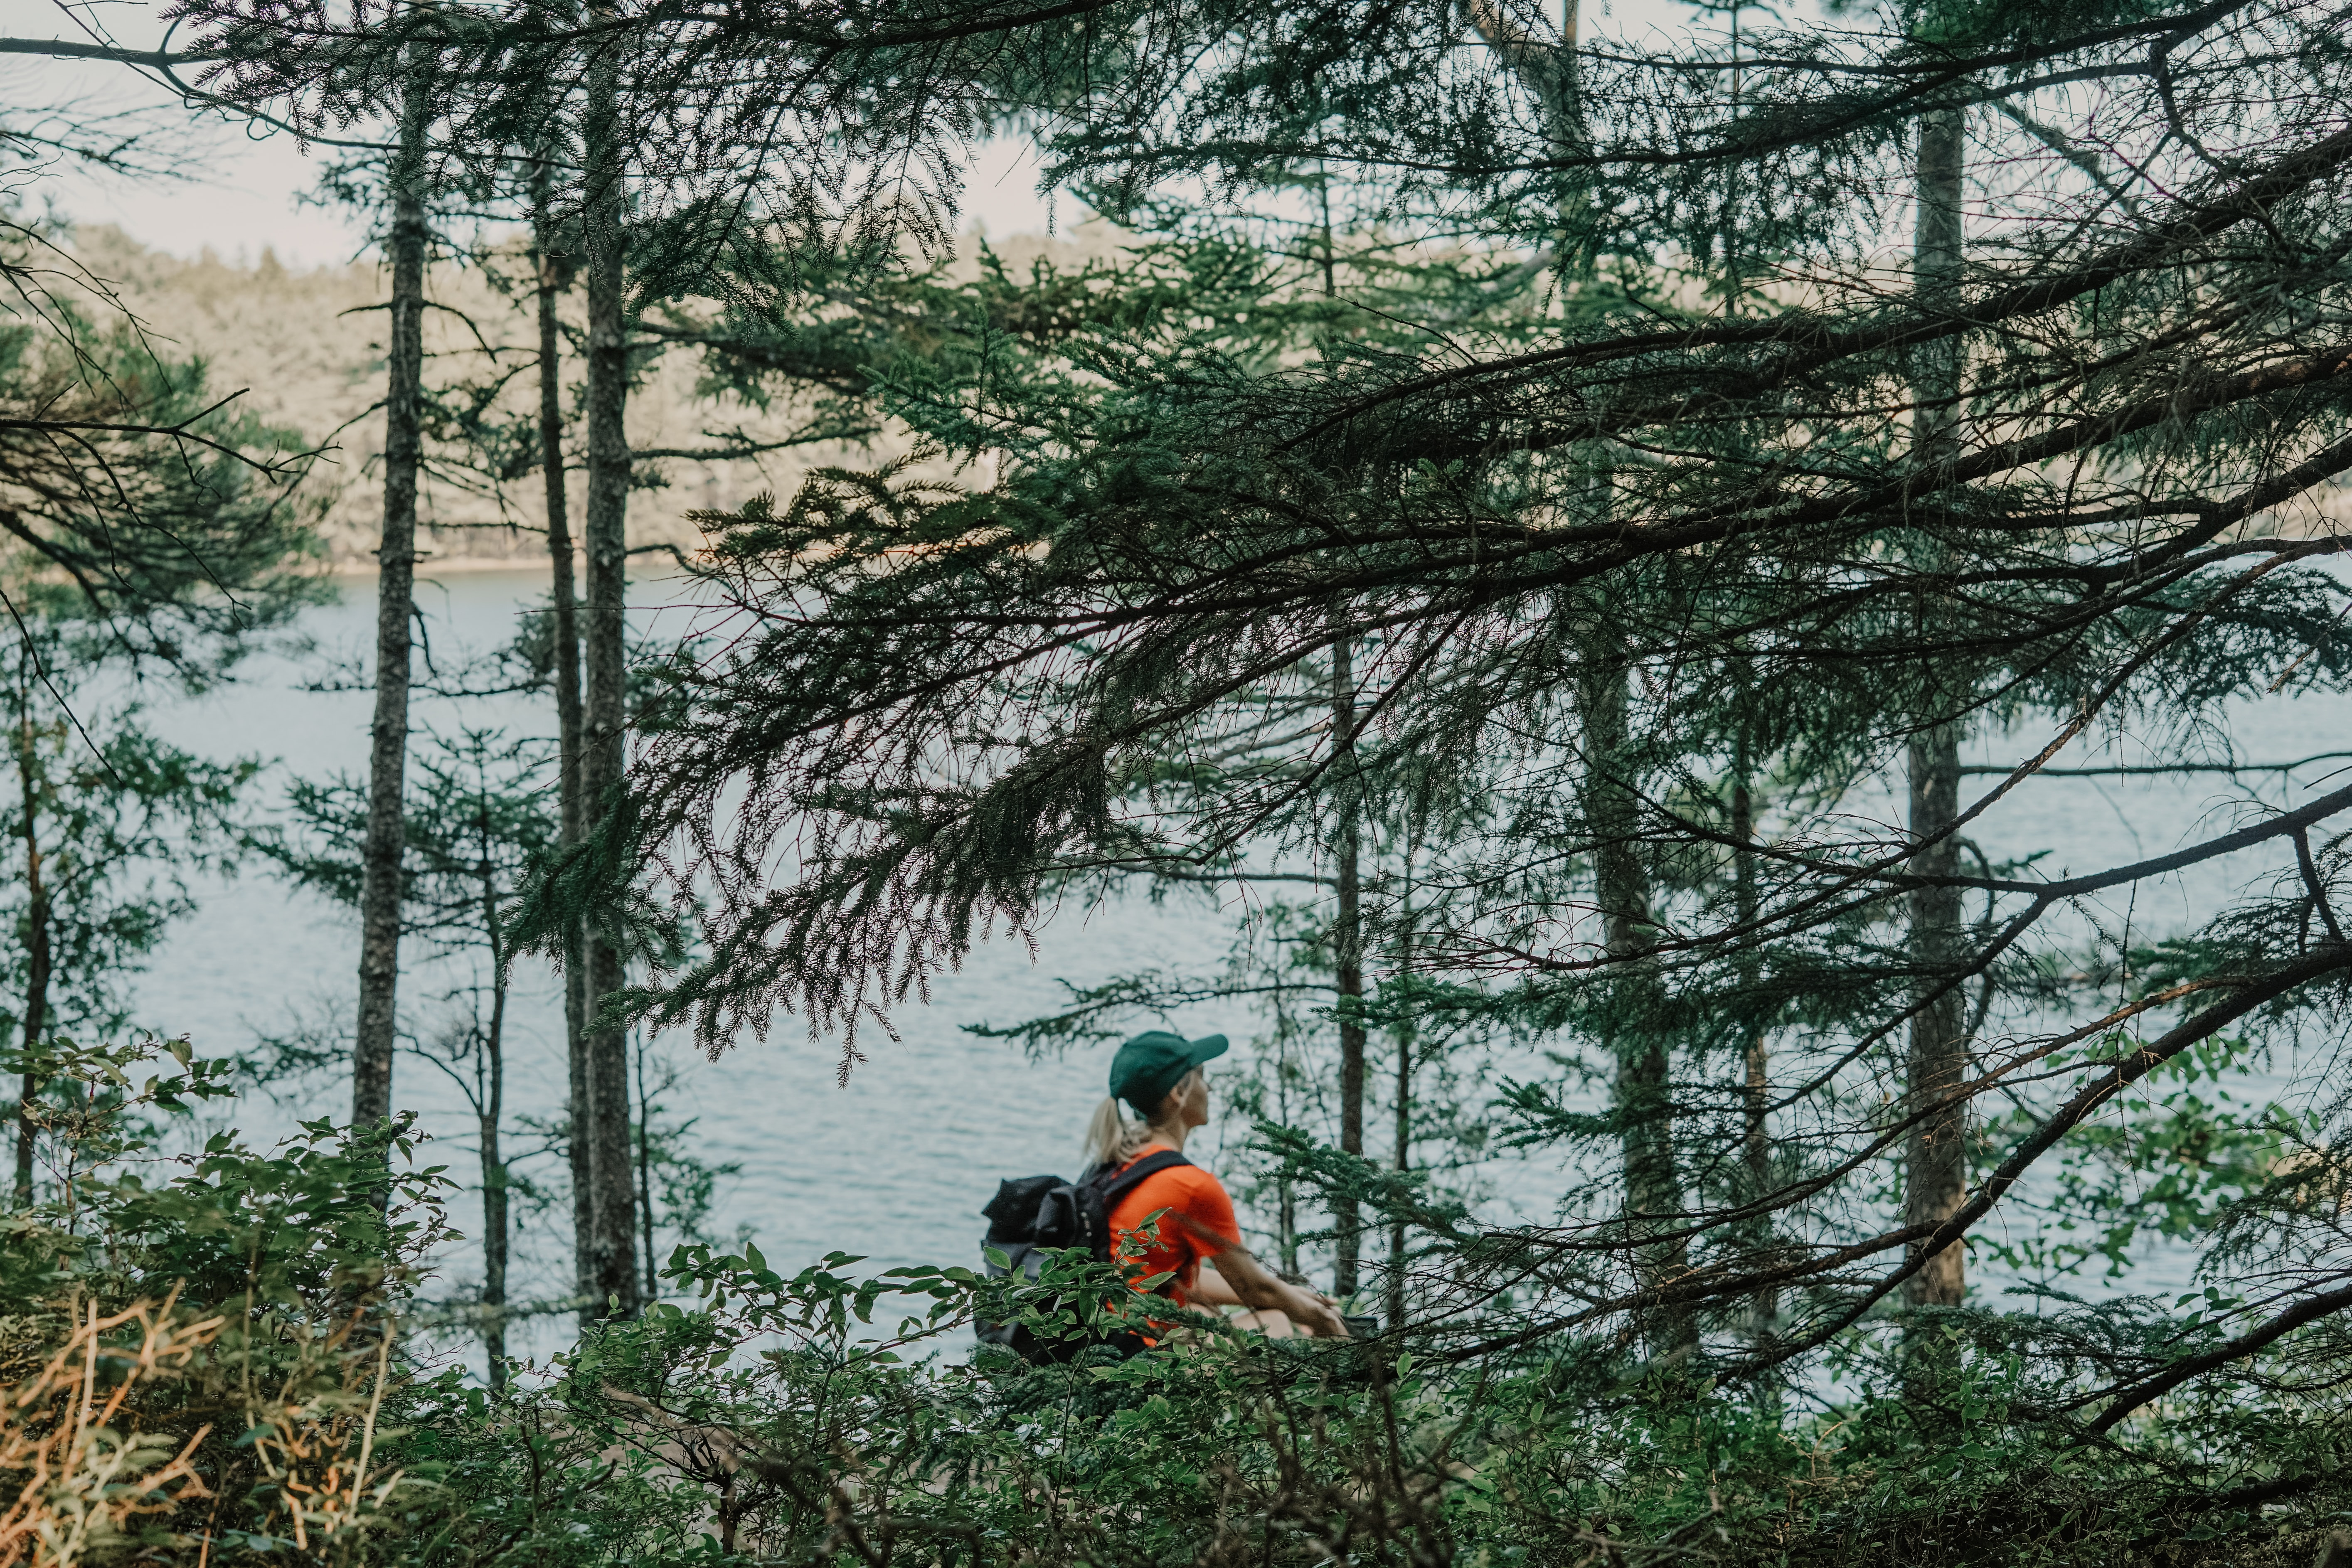 girl with backpack near the body of water during daytime